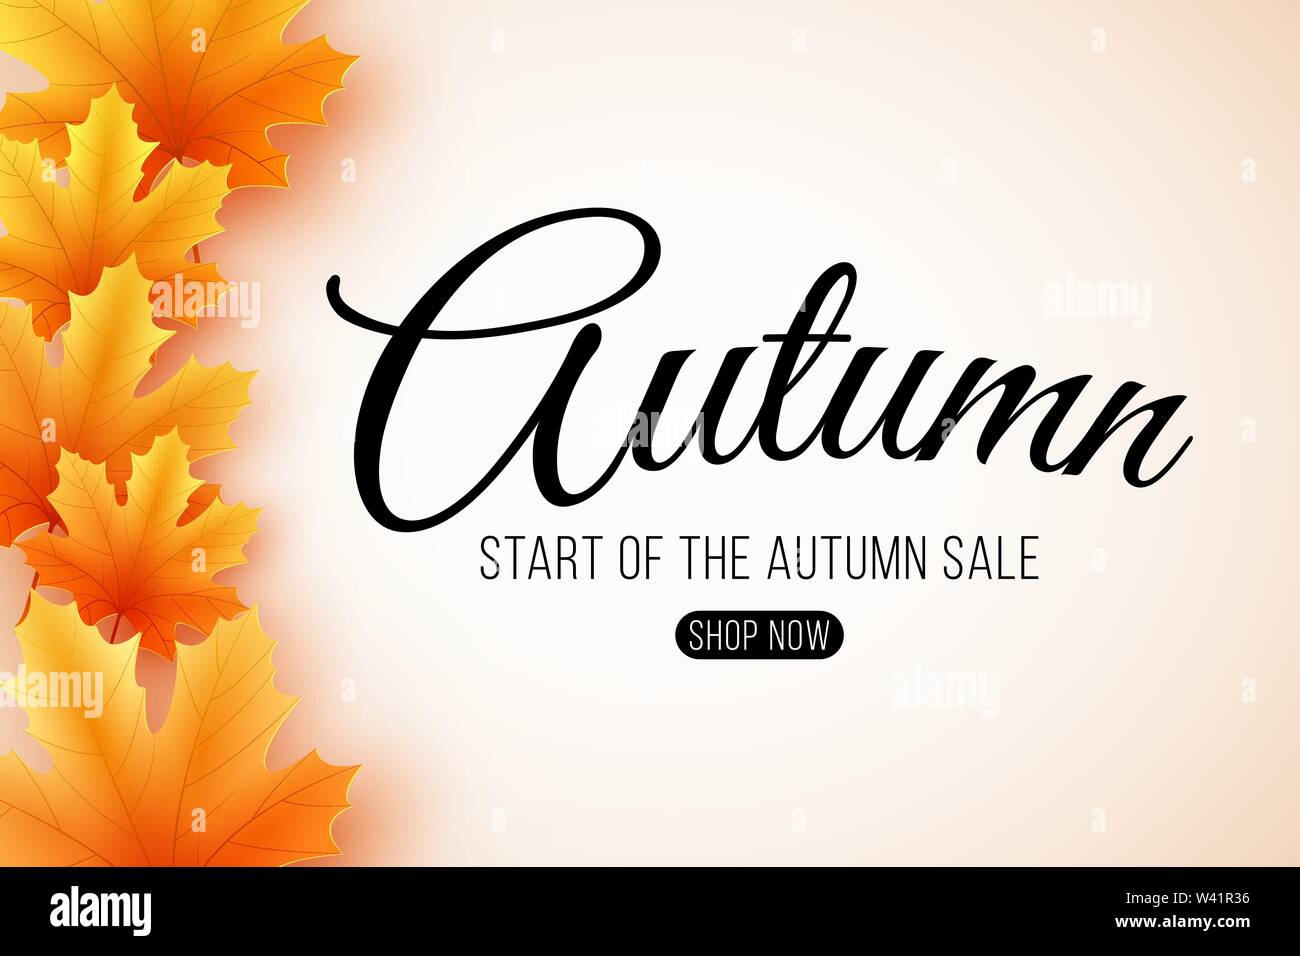 Autumn sale. Web banner with lettering. Seasonal poster with autumn leaves. Maple leaf. Start of the autumn sale. Vector illustration. EPS 10 - Stock Image